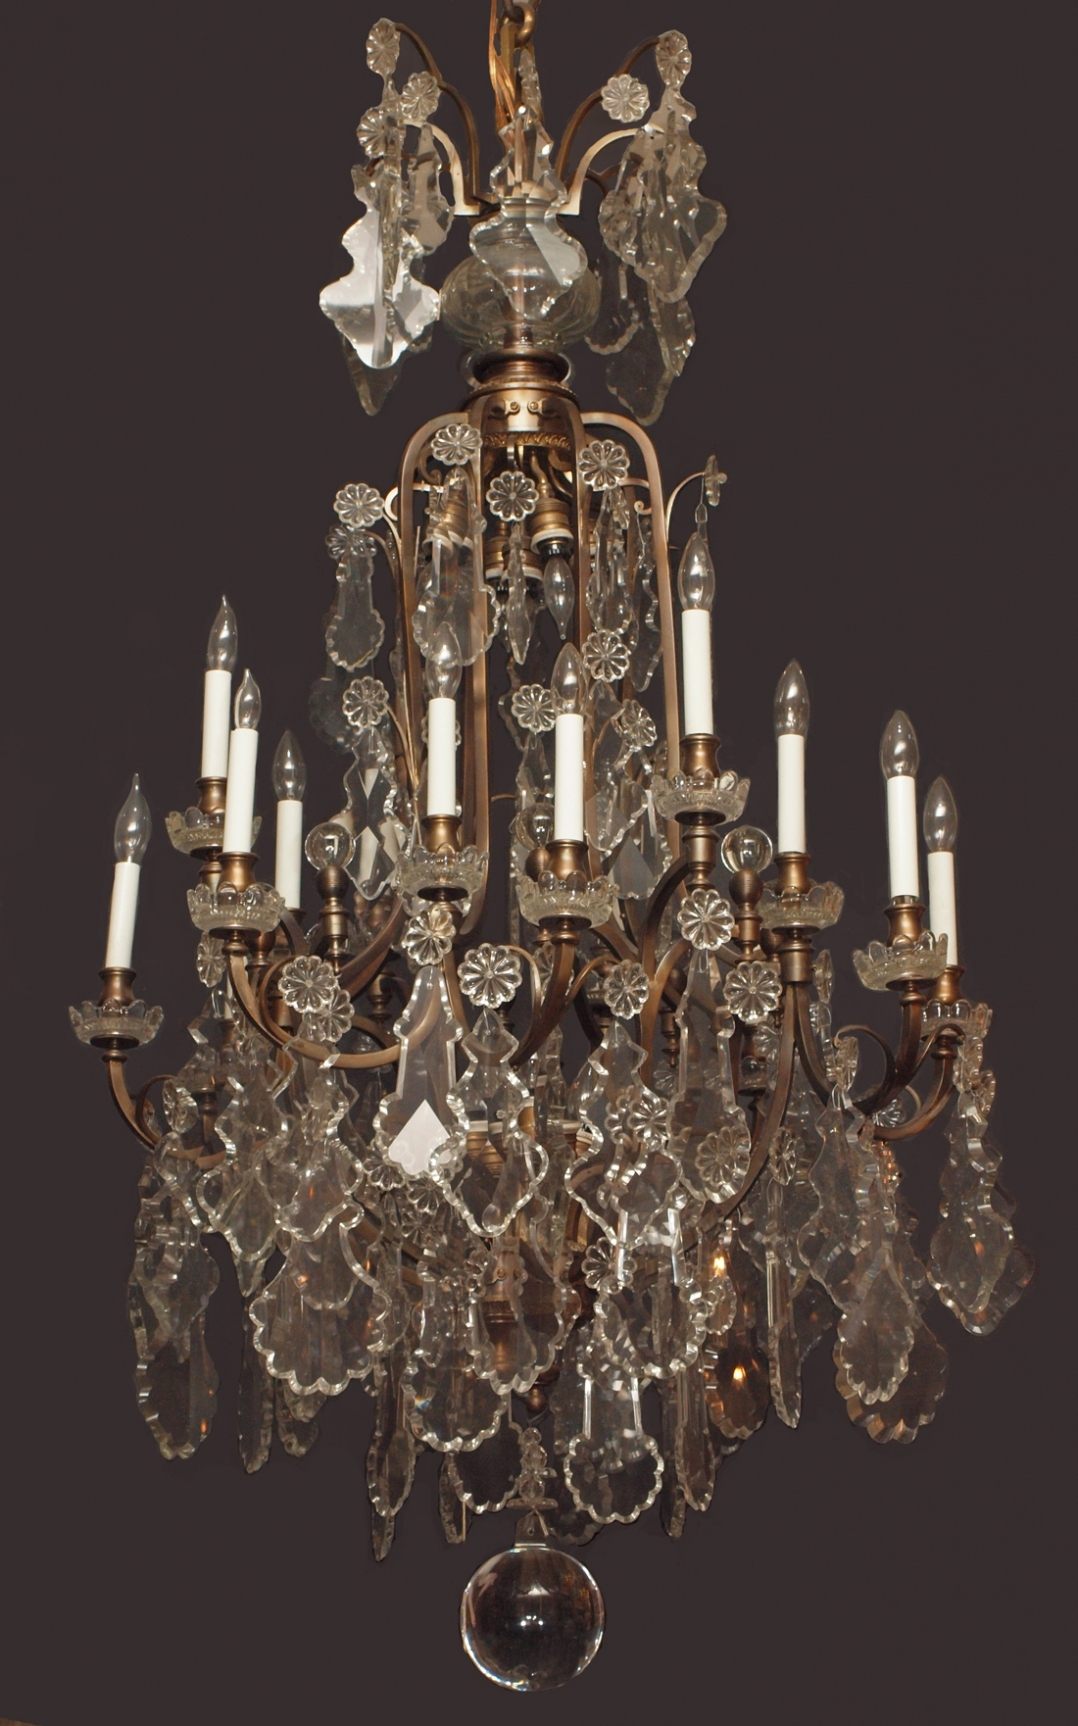 Recent Home Decor: Chandeliers Design : Black Glass Chandelier Chandelier Within Black Glass Chandeliers (View 16 of 20)